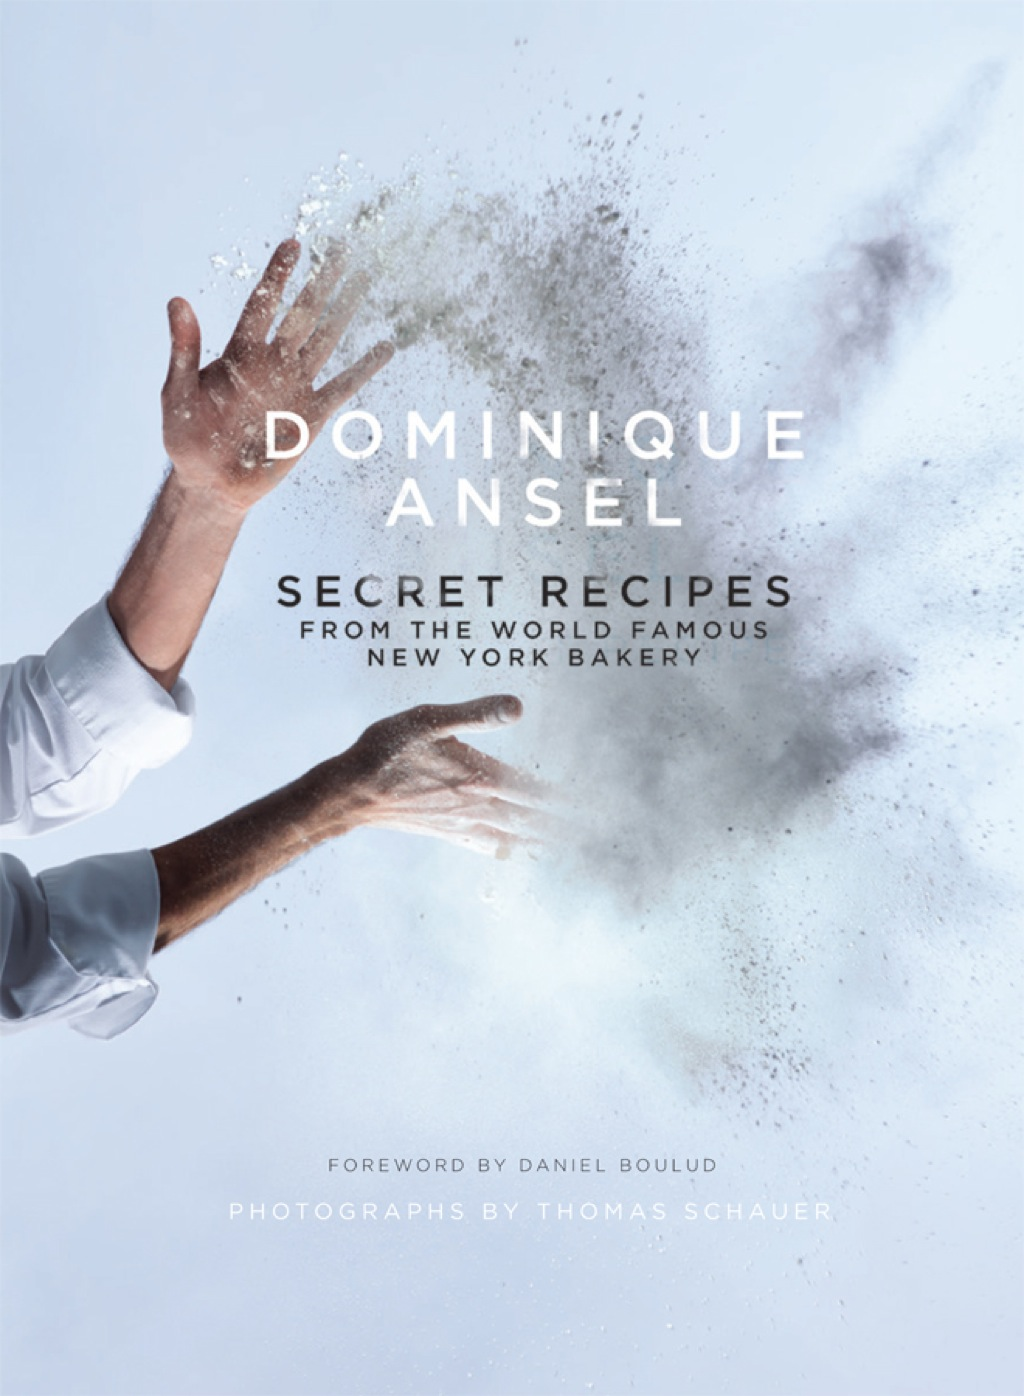 Dominique Ansel: Secret Recipes from the World Famous New York Bakery (ebook) eBooks